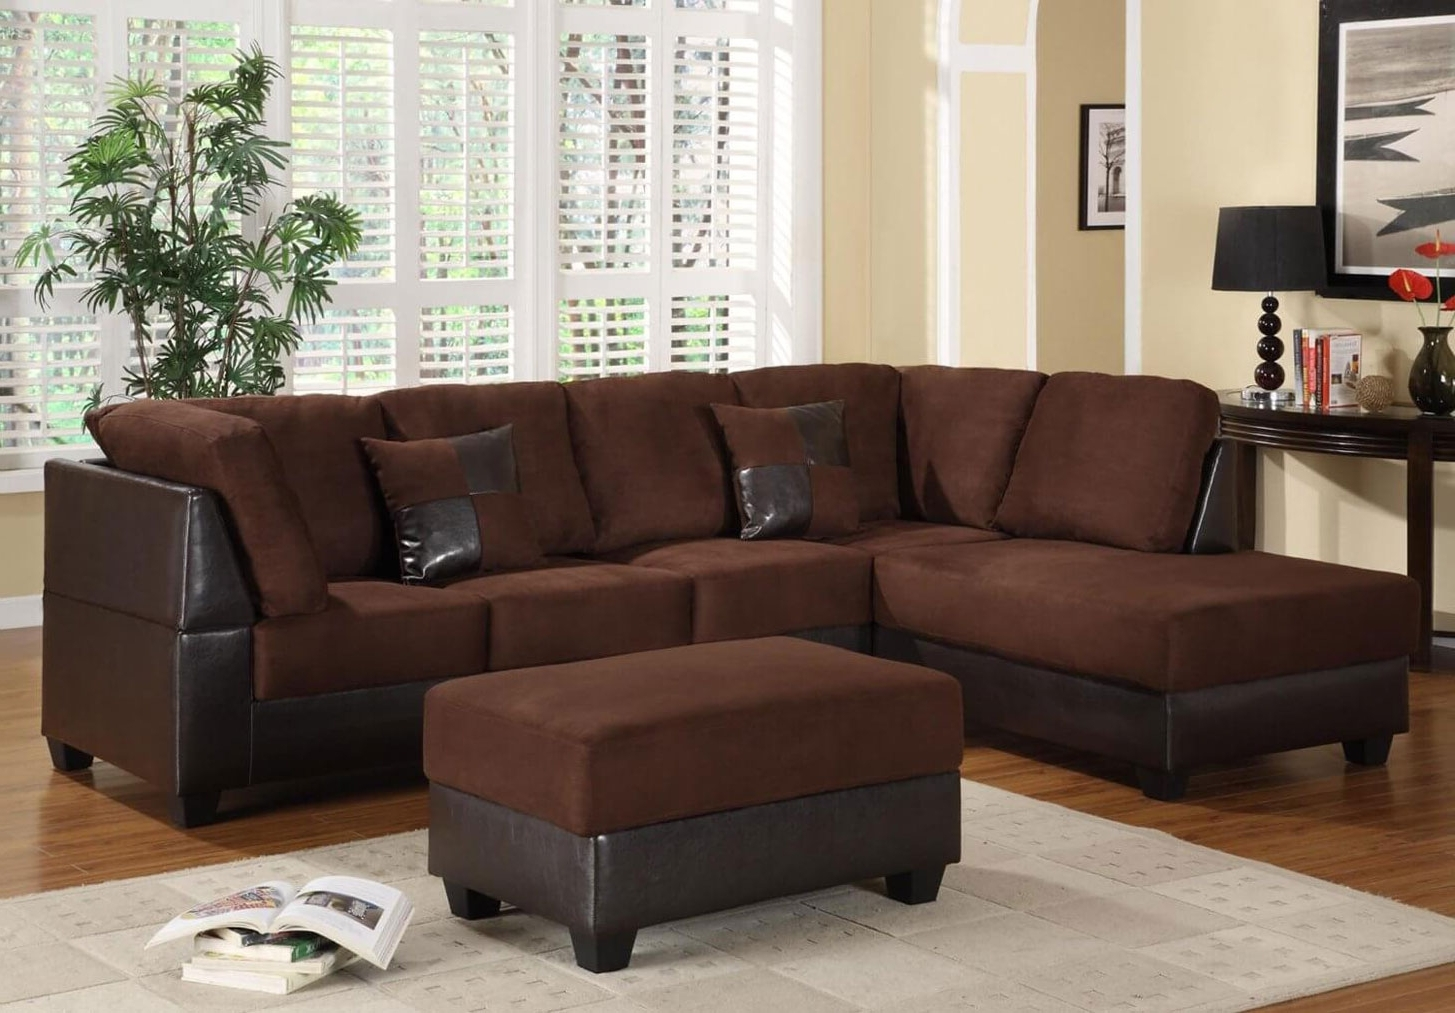 Sectional Sofa: Most Recommended Sectional Sofas Under $1000 Within Newest Halifax Sectional Sofas (View 13 of 15)